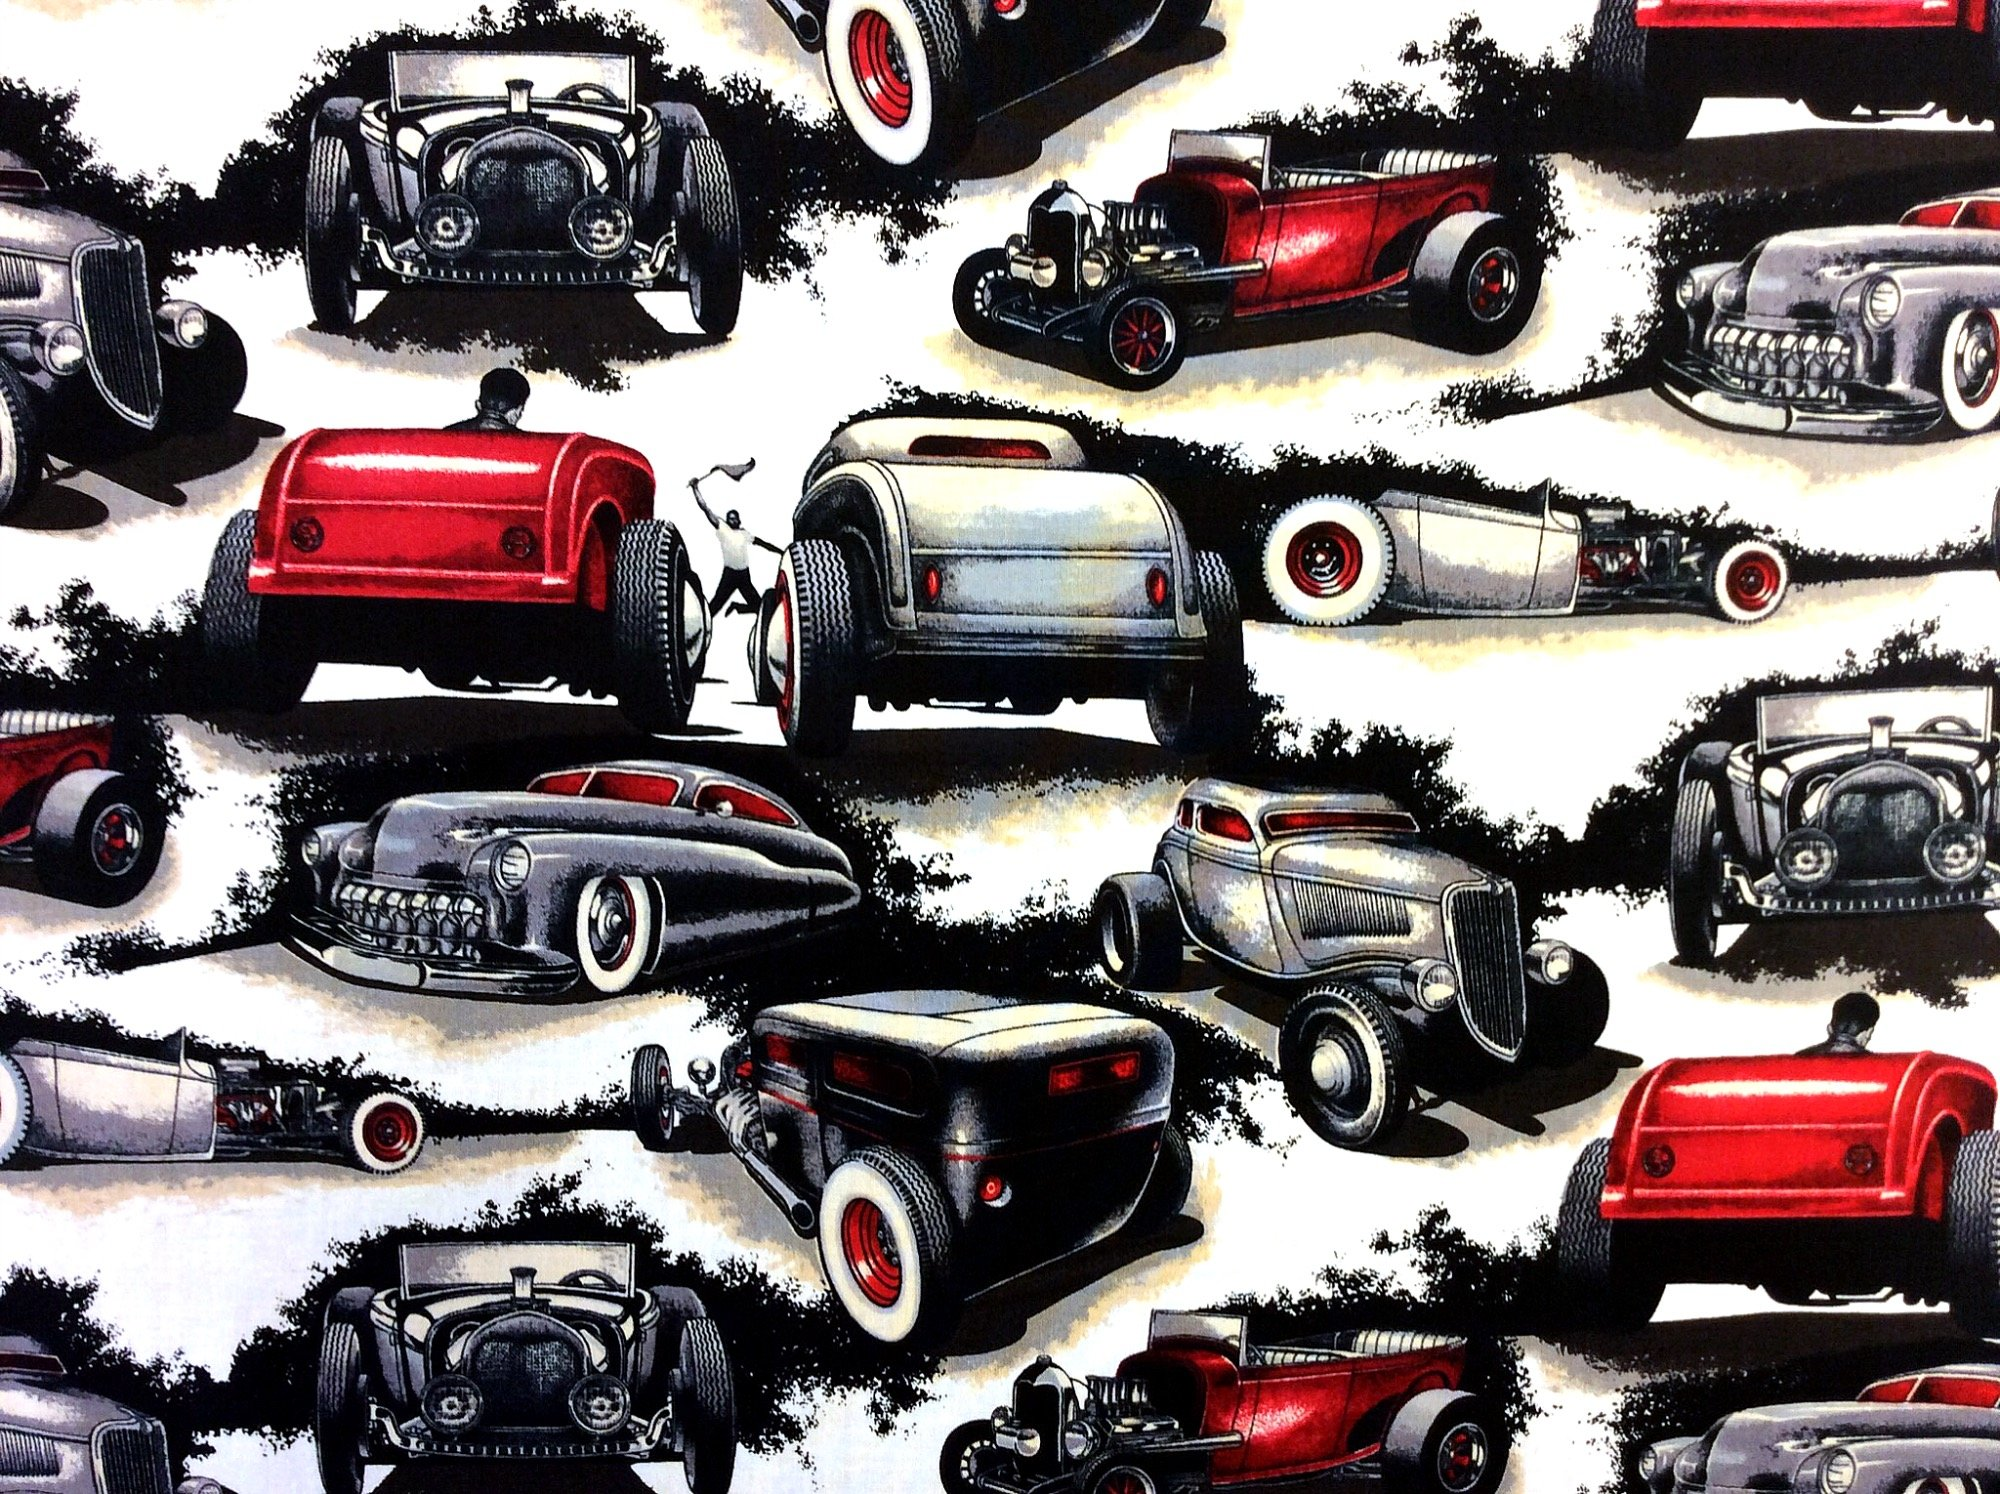 LAST PIECE! 30 X 44 Shadow Rods Hot Rod Street Race Cars Cotton Quilt Fabric PCAH265